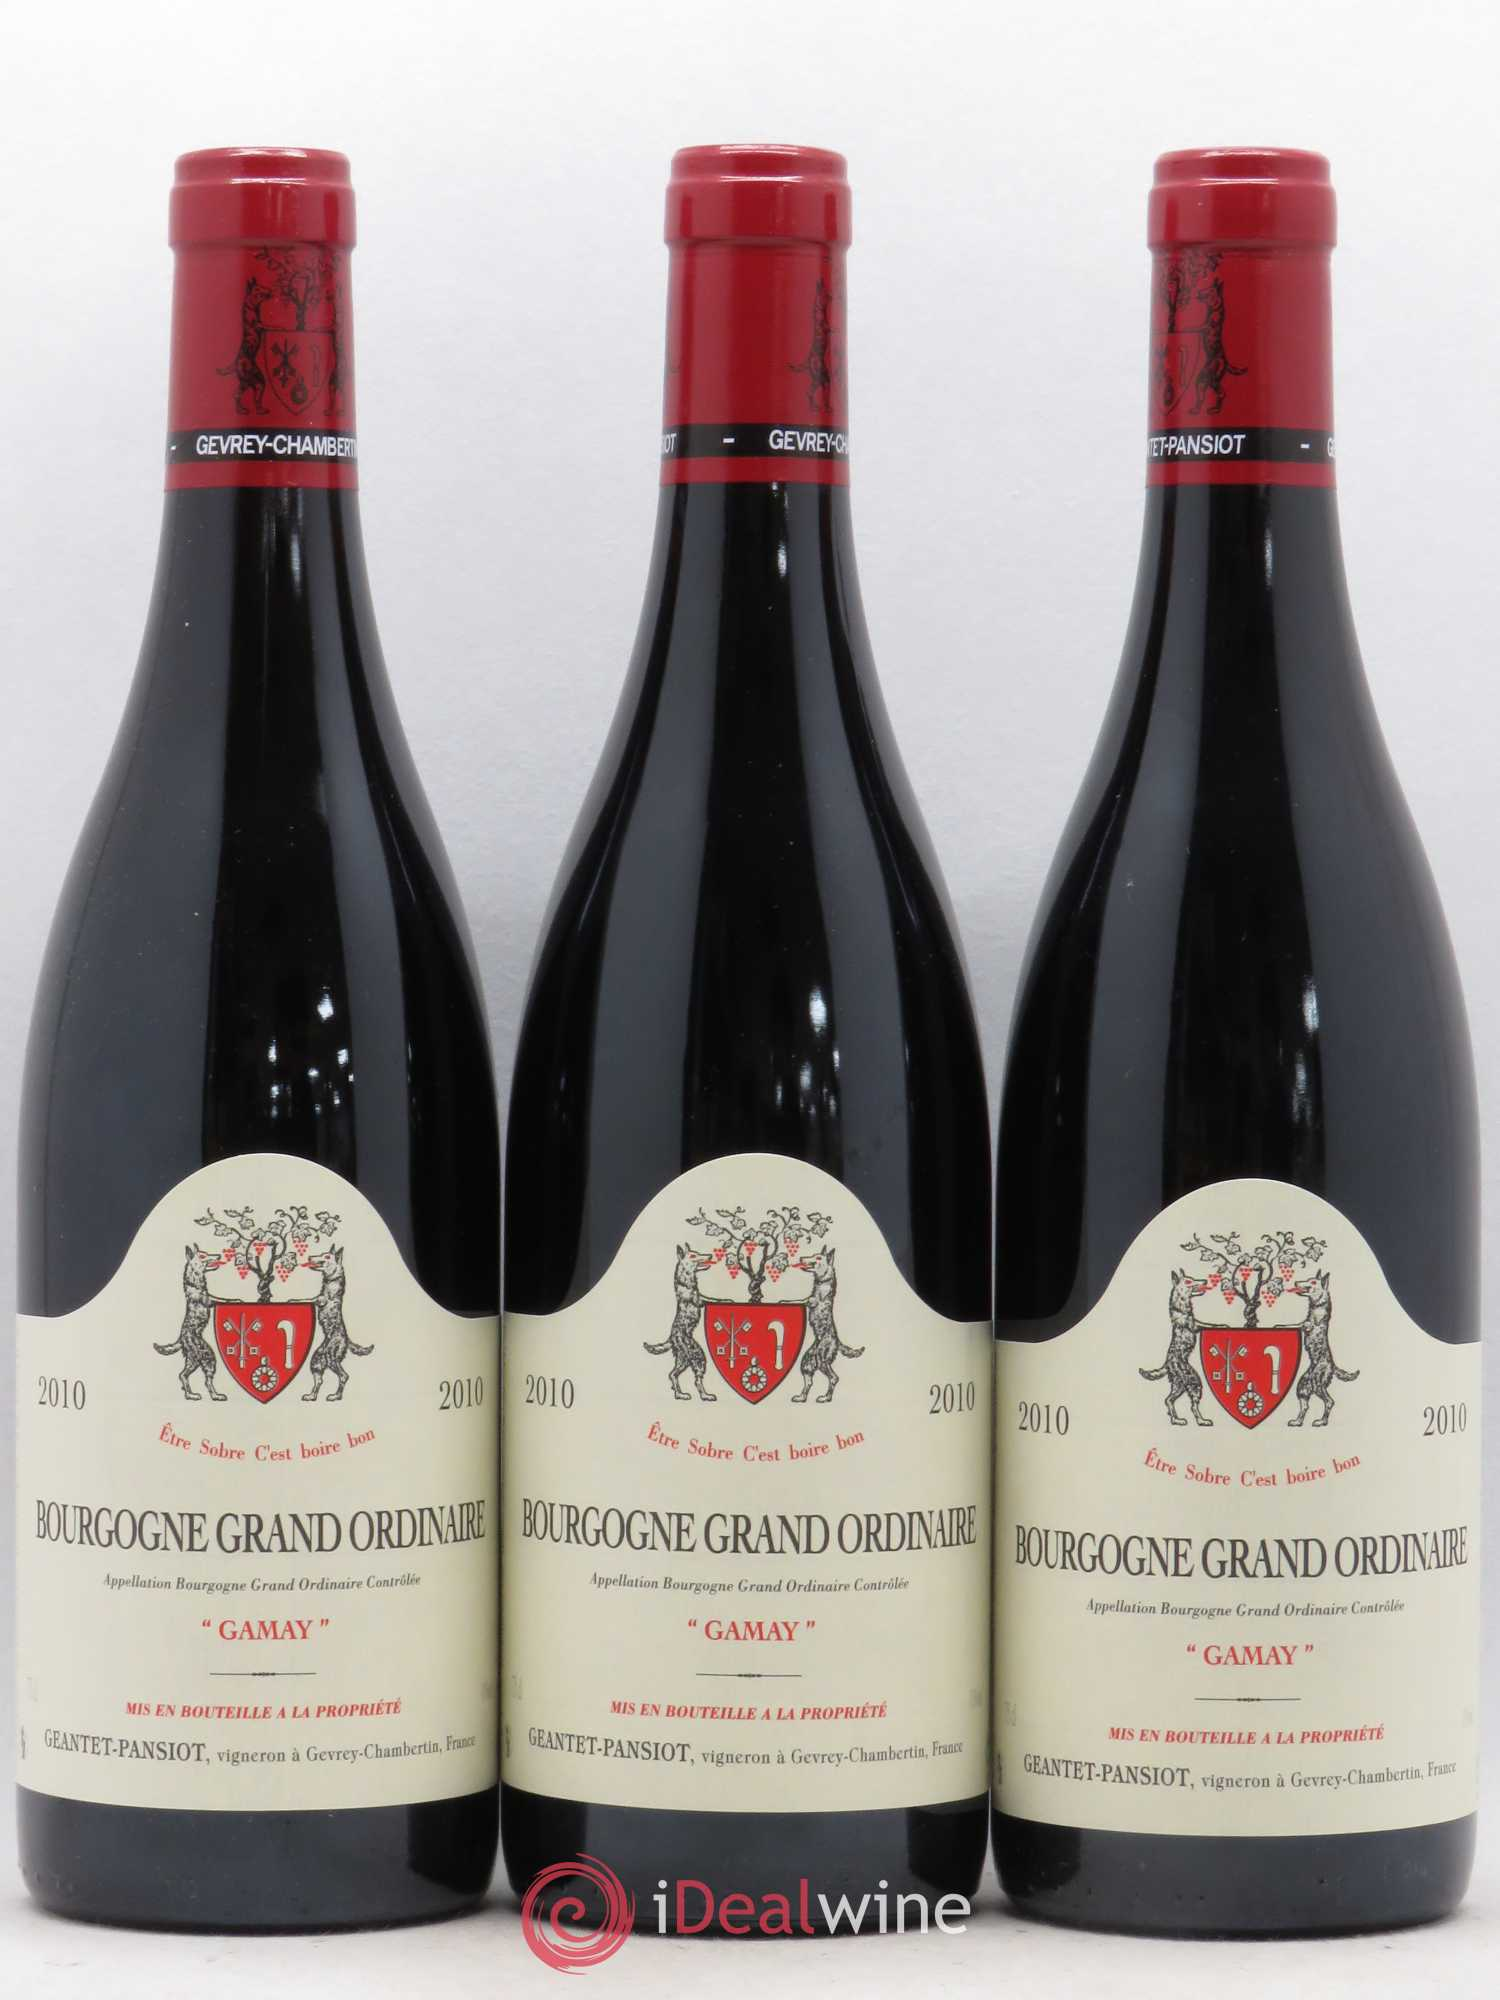 Bourgogne Grand Ordinaire Gamay Geantet Pansiot (no reserve) 2010 - Lot of 3 Bottles